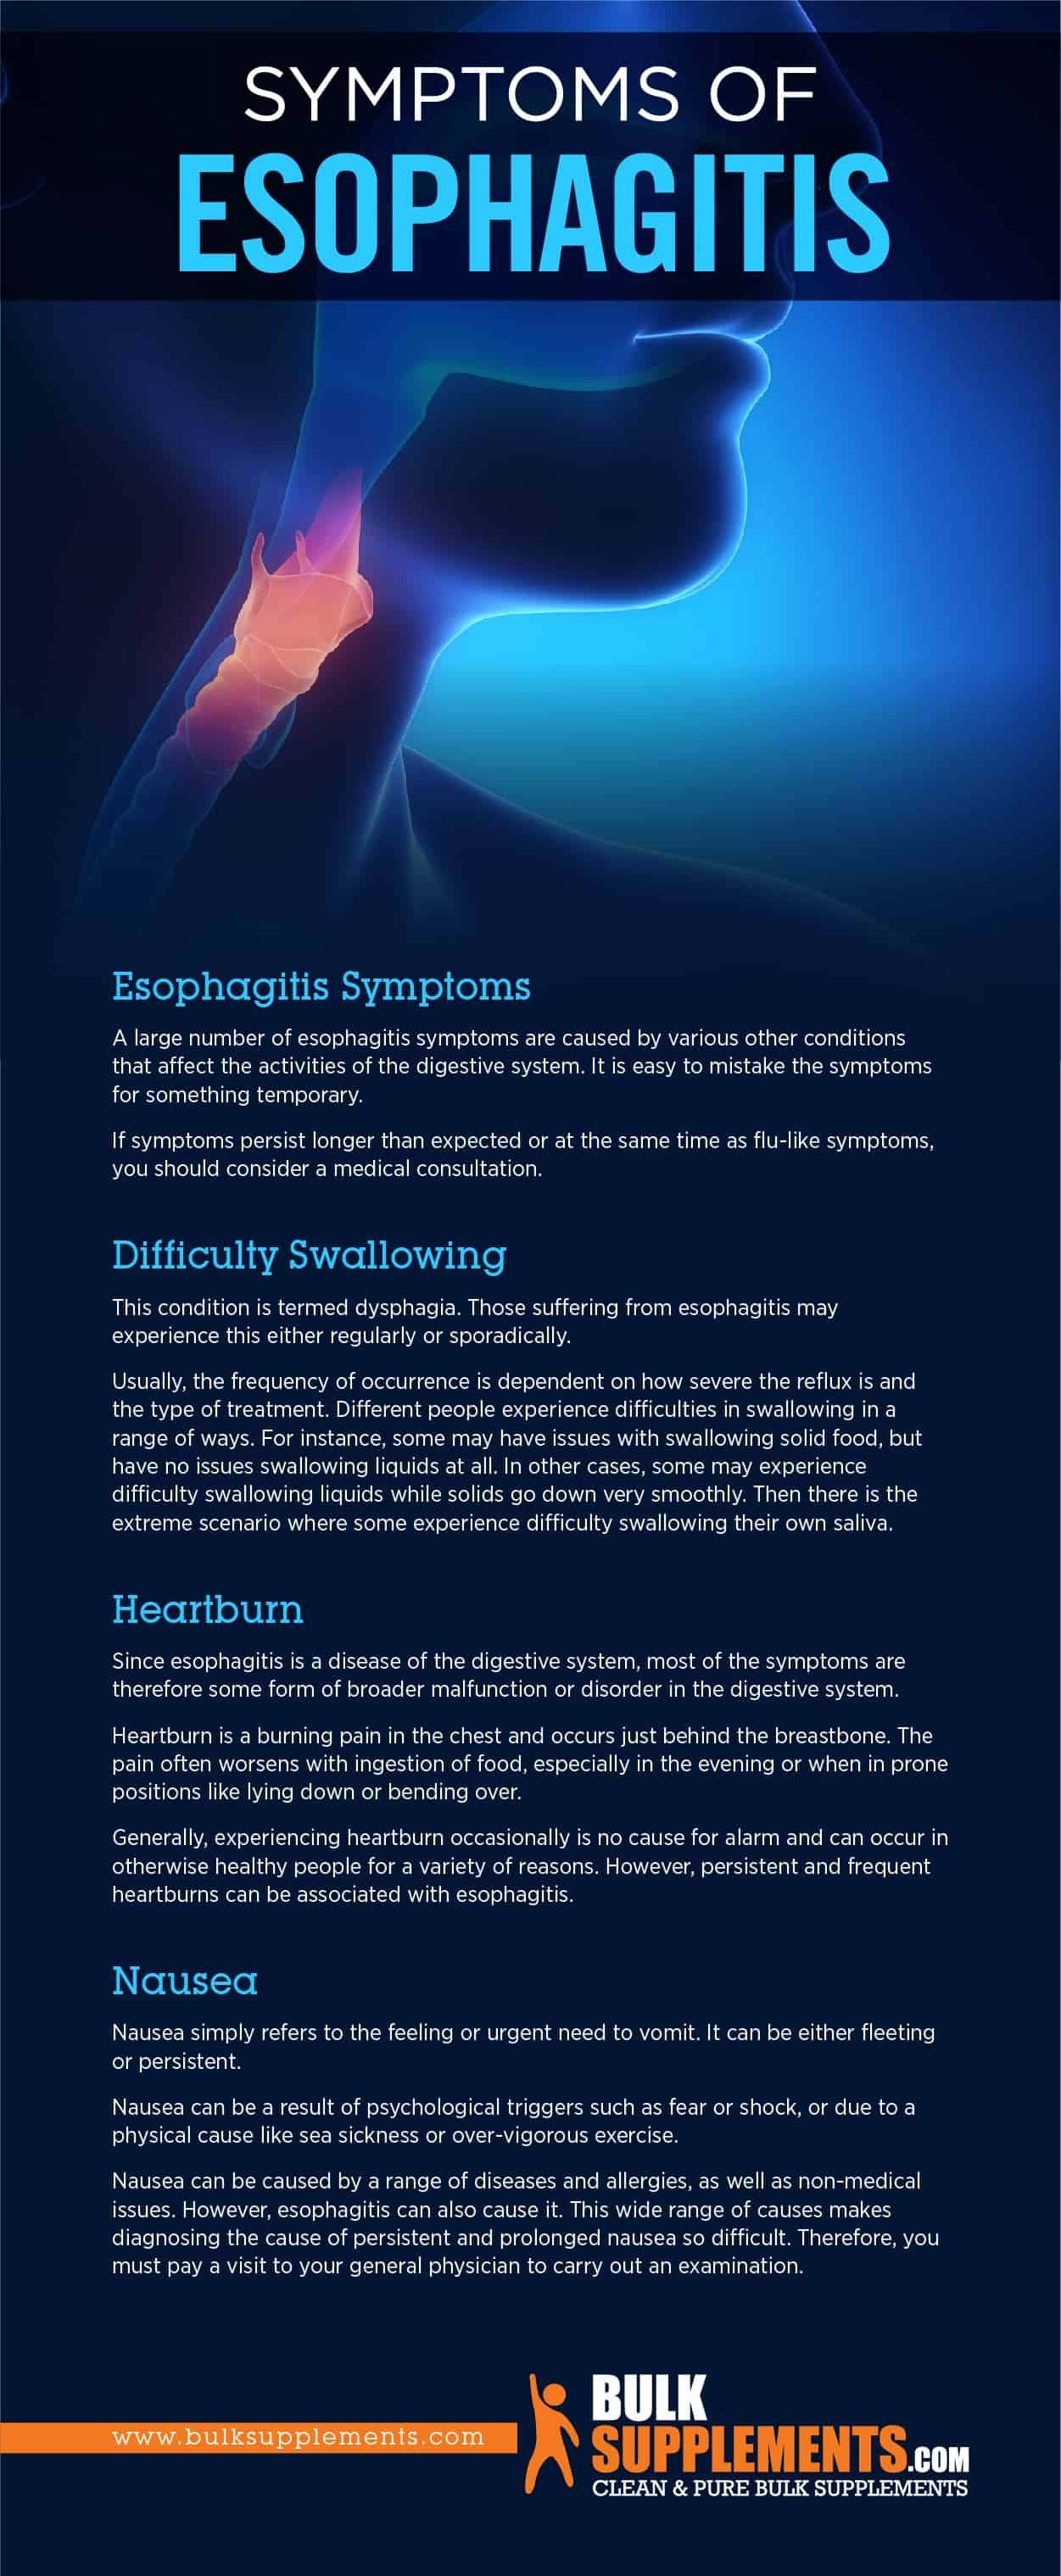 Symptoms of Esophagitis